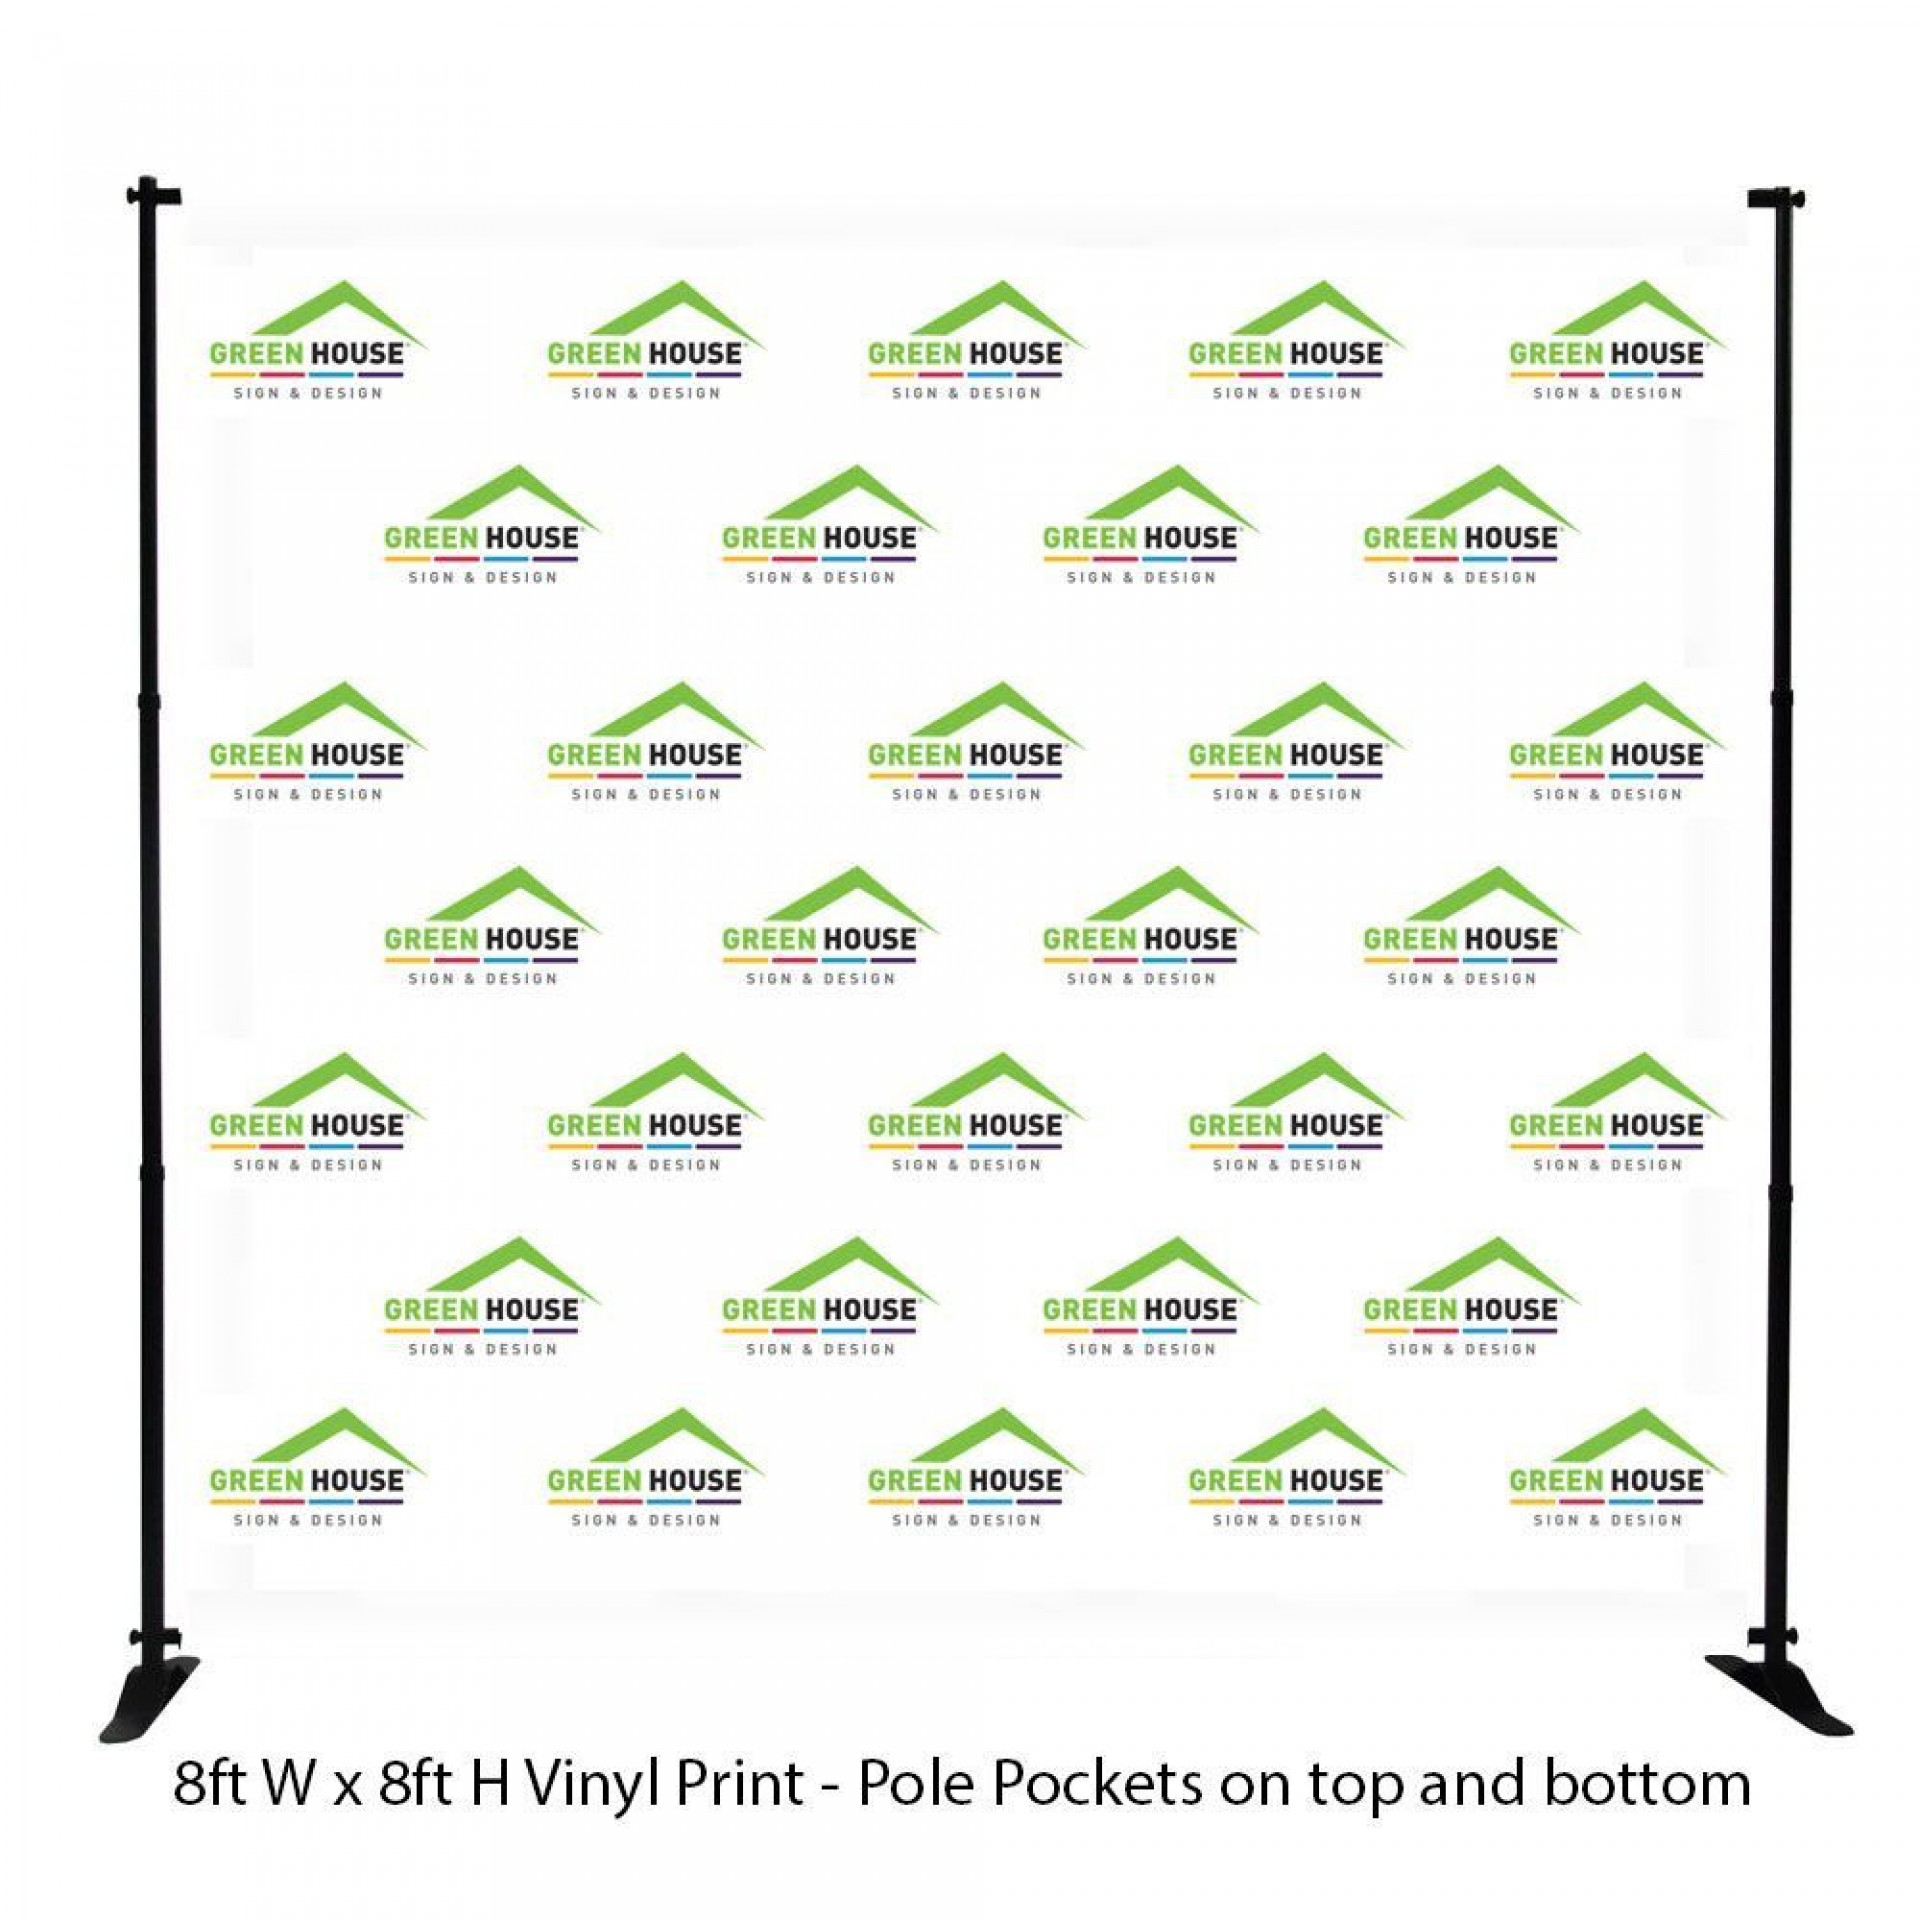 003 Excellent Step And Repeat Banner Template Photo  Psd Photoshop 8x81920